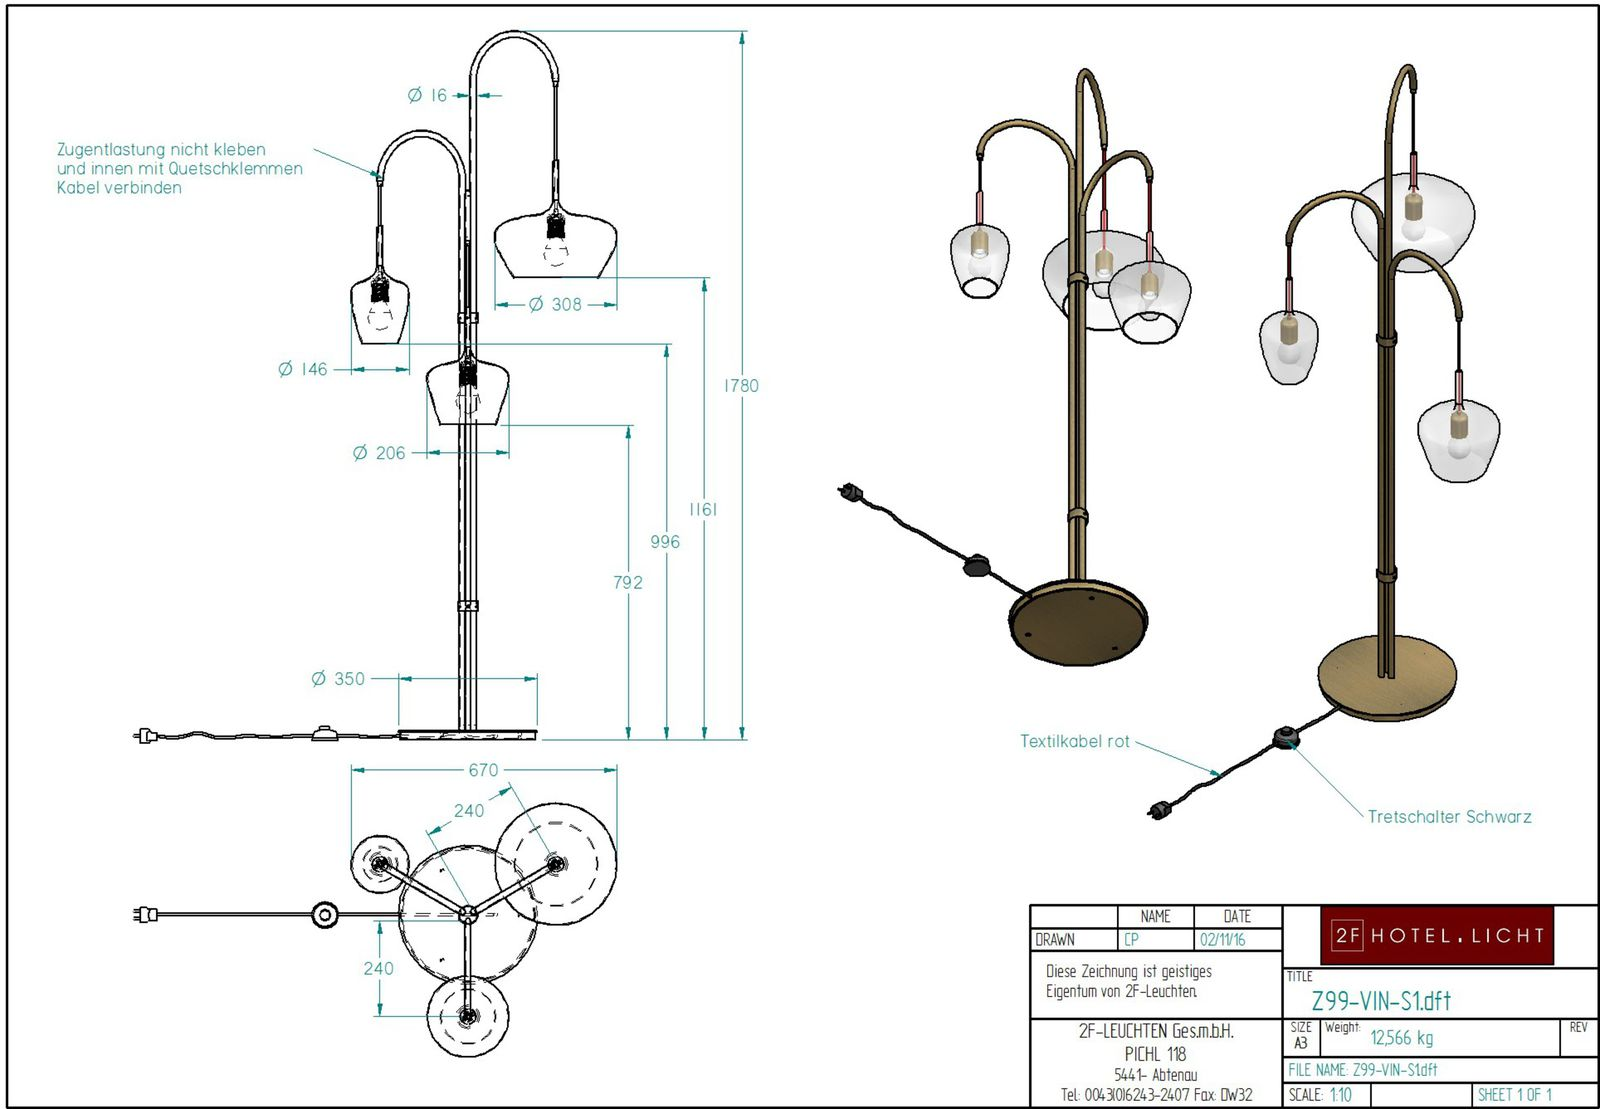 floor lamp Pure Vino, dimensions: L:670mm, H:1780mm, surface: burnisched brass, techn. Data: 3xE27, 42W 230V